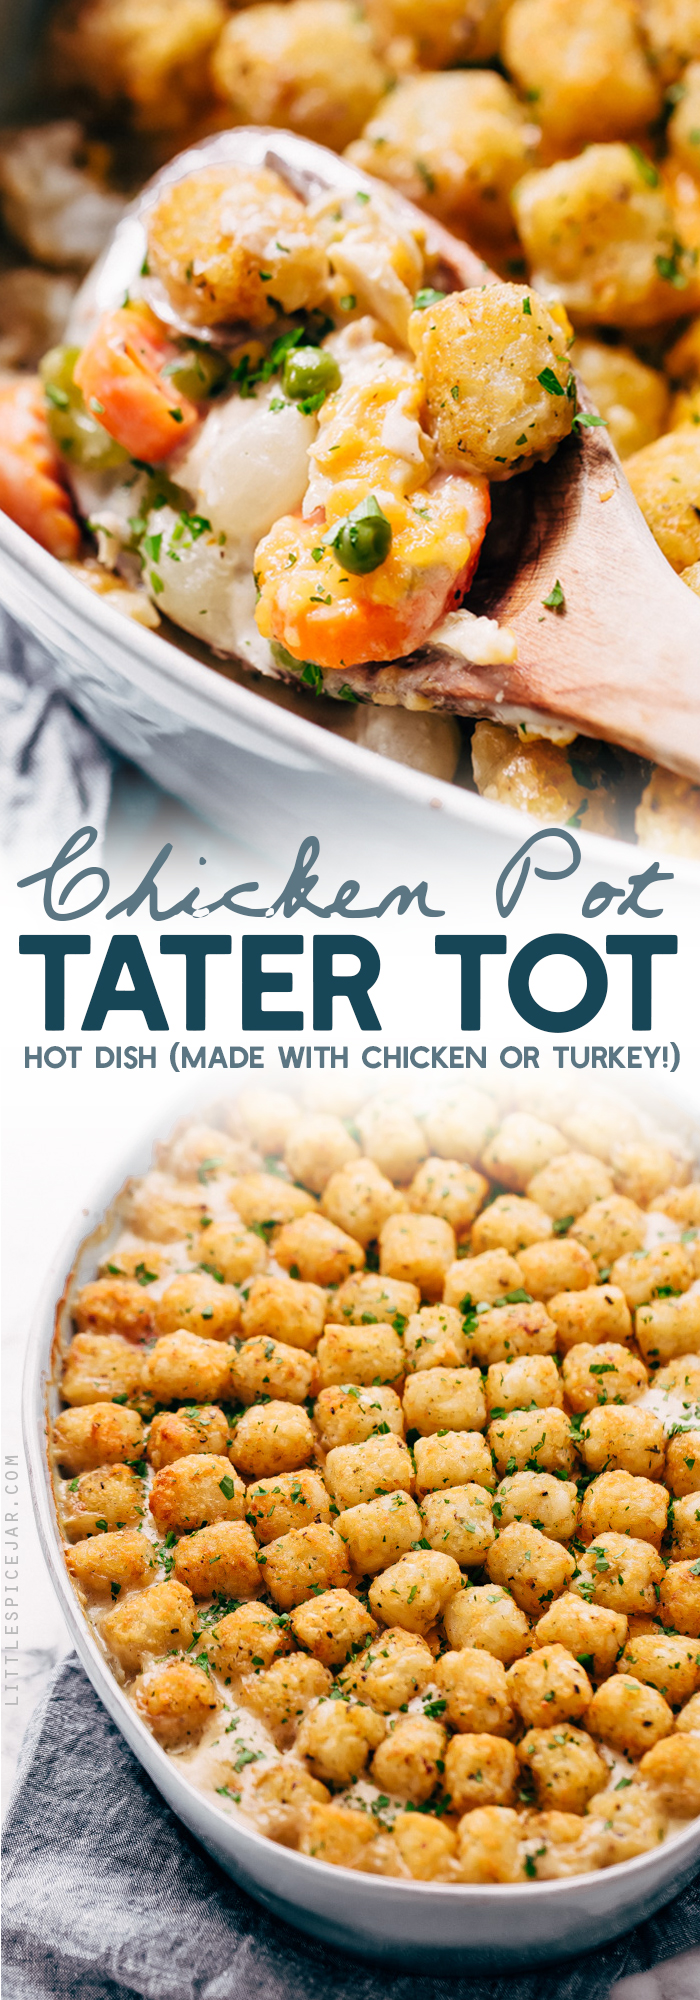 Chicken Pot Tater Tot Hotdish - A chicken pot pie meets a hotdish! This is the most comforting meal ever and it's perfect to make when you need to use up leftover chicken or turkey! #hotdish #casserole #chickenpothotdish #chickentatertotcasserole #chickencasserole | Littlespicejar.com